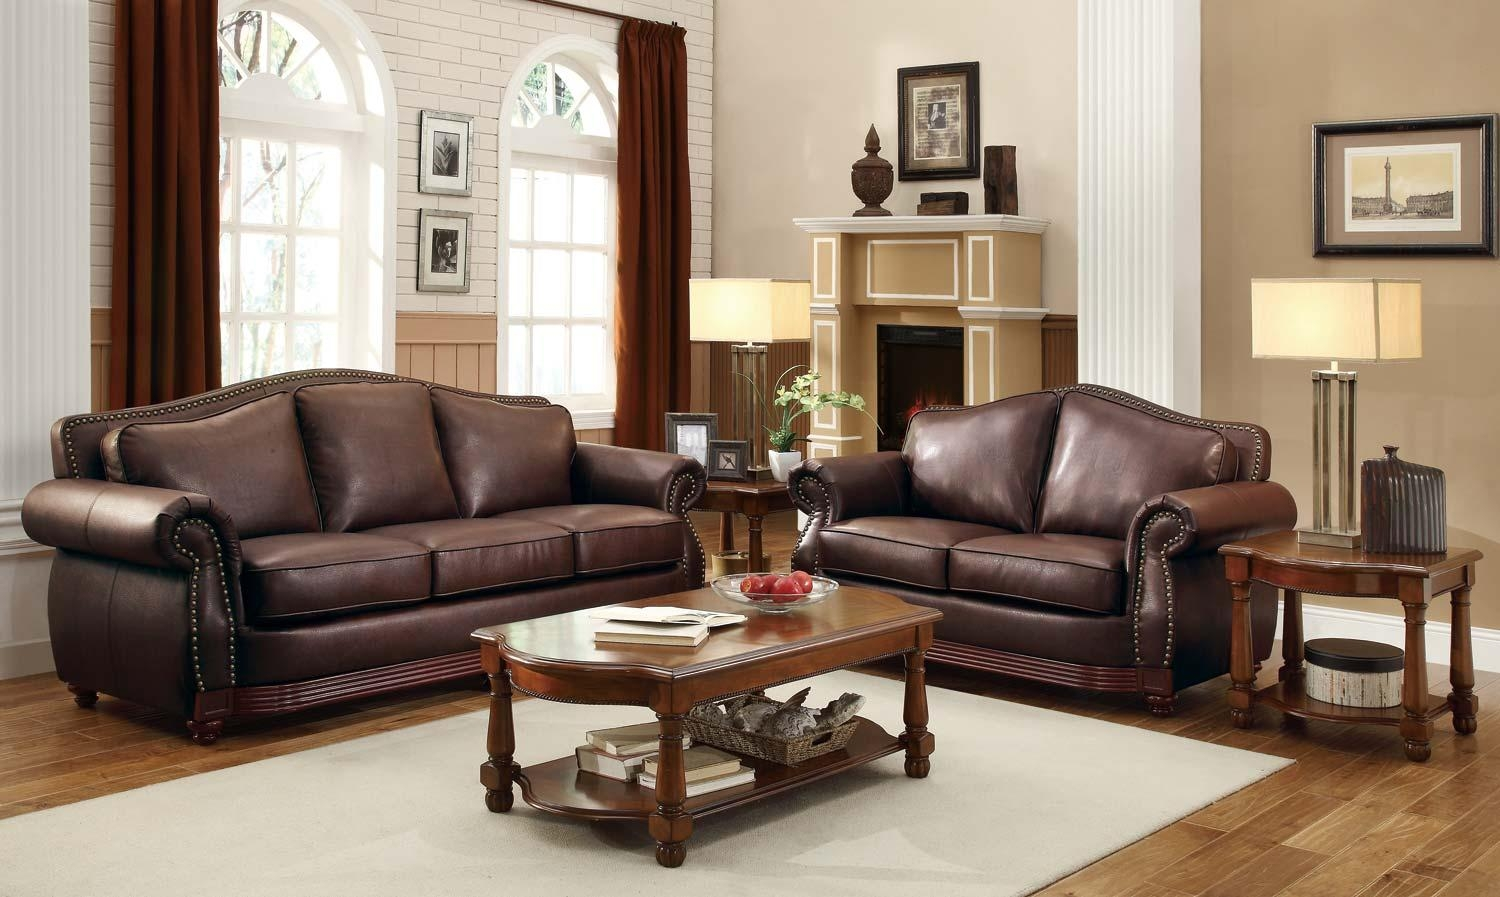 Homelegance Midwood Bonded Leather Sofa Collection – Dark Brown Throughout Homelegance Sofas (View 20 of 20)